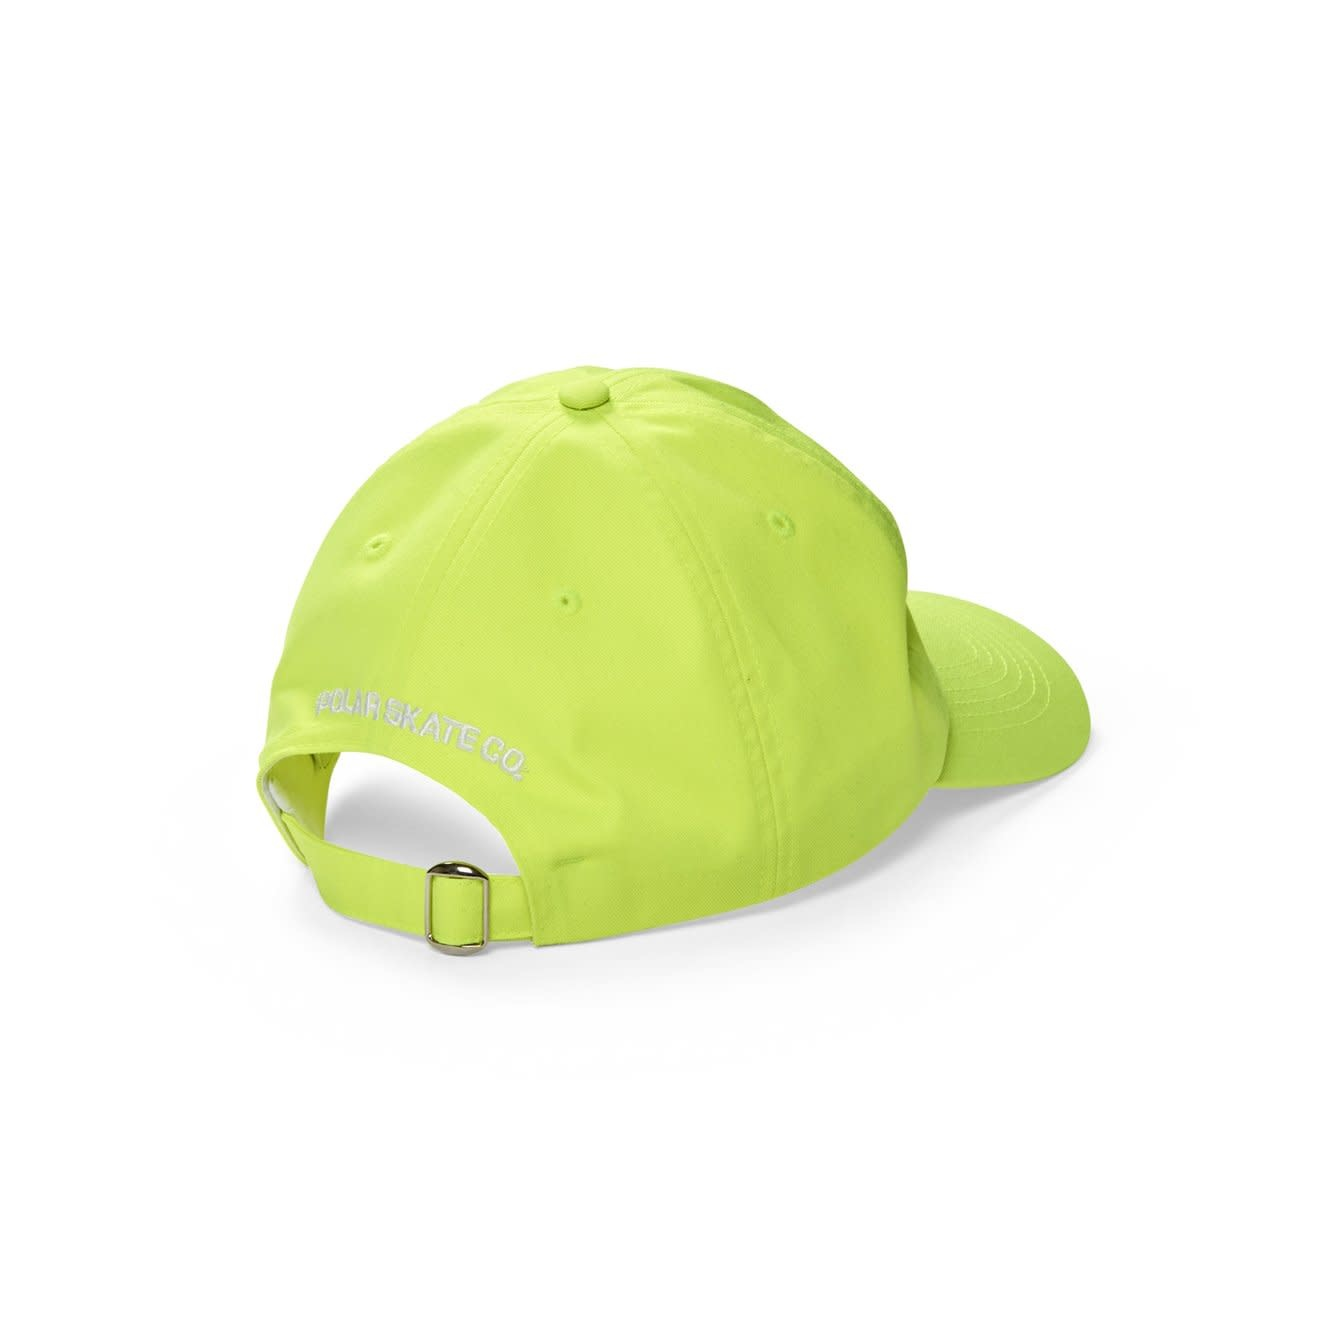 Polar Skate Co. Stroke Logo Cap Neon Yellow 56c